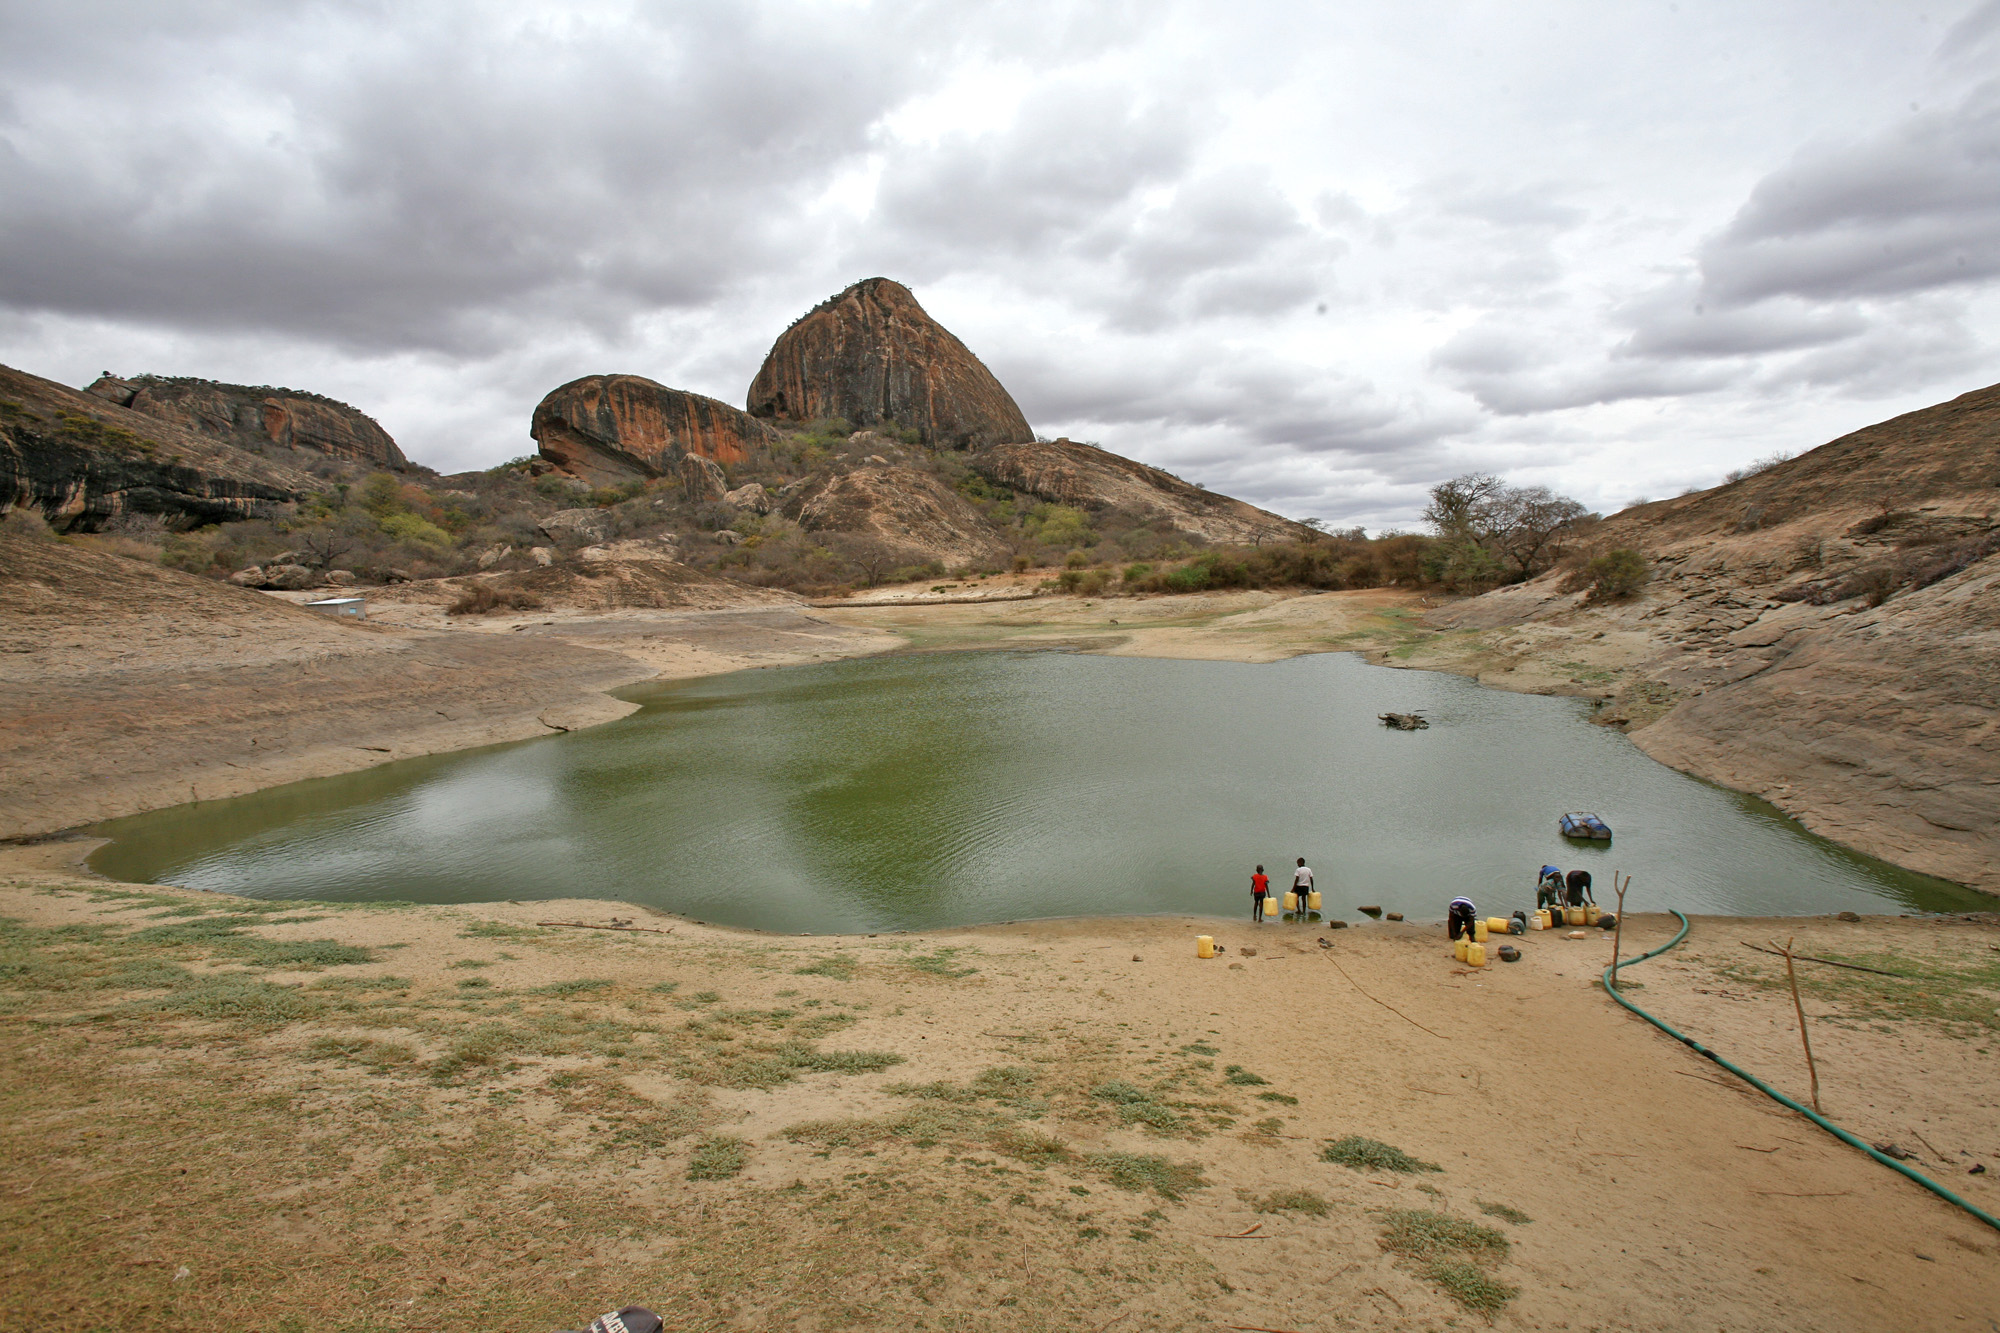 The Ngomeni rock water catchment dam in Mwingi district, Kenya, which serves hundreds of households is drying up for the first time in years, according to residents